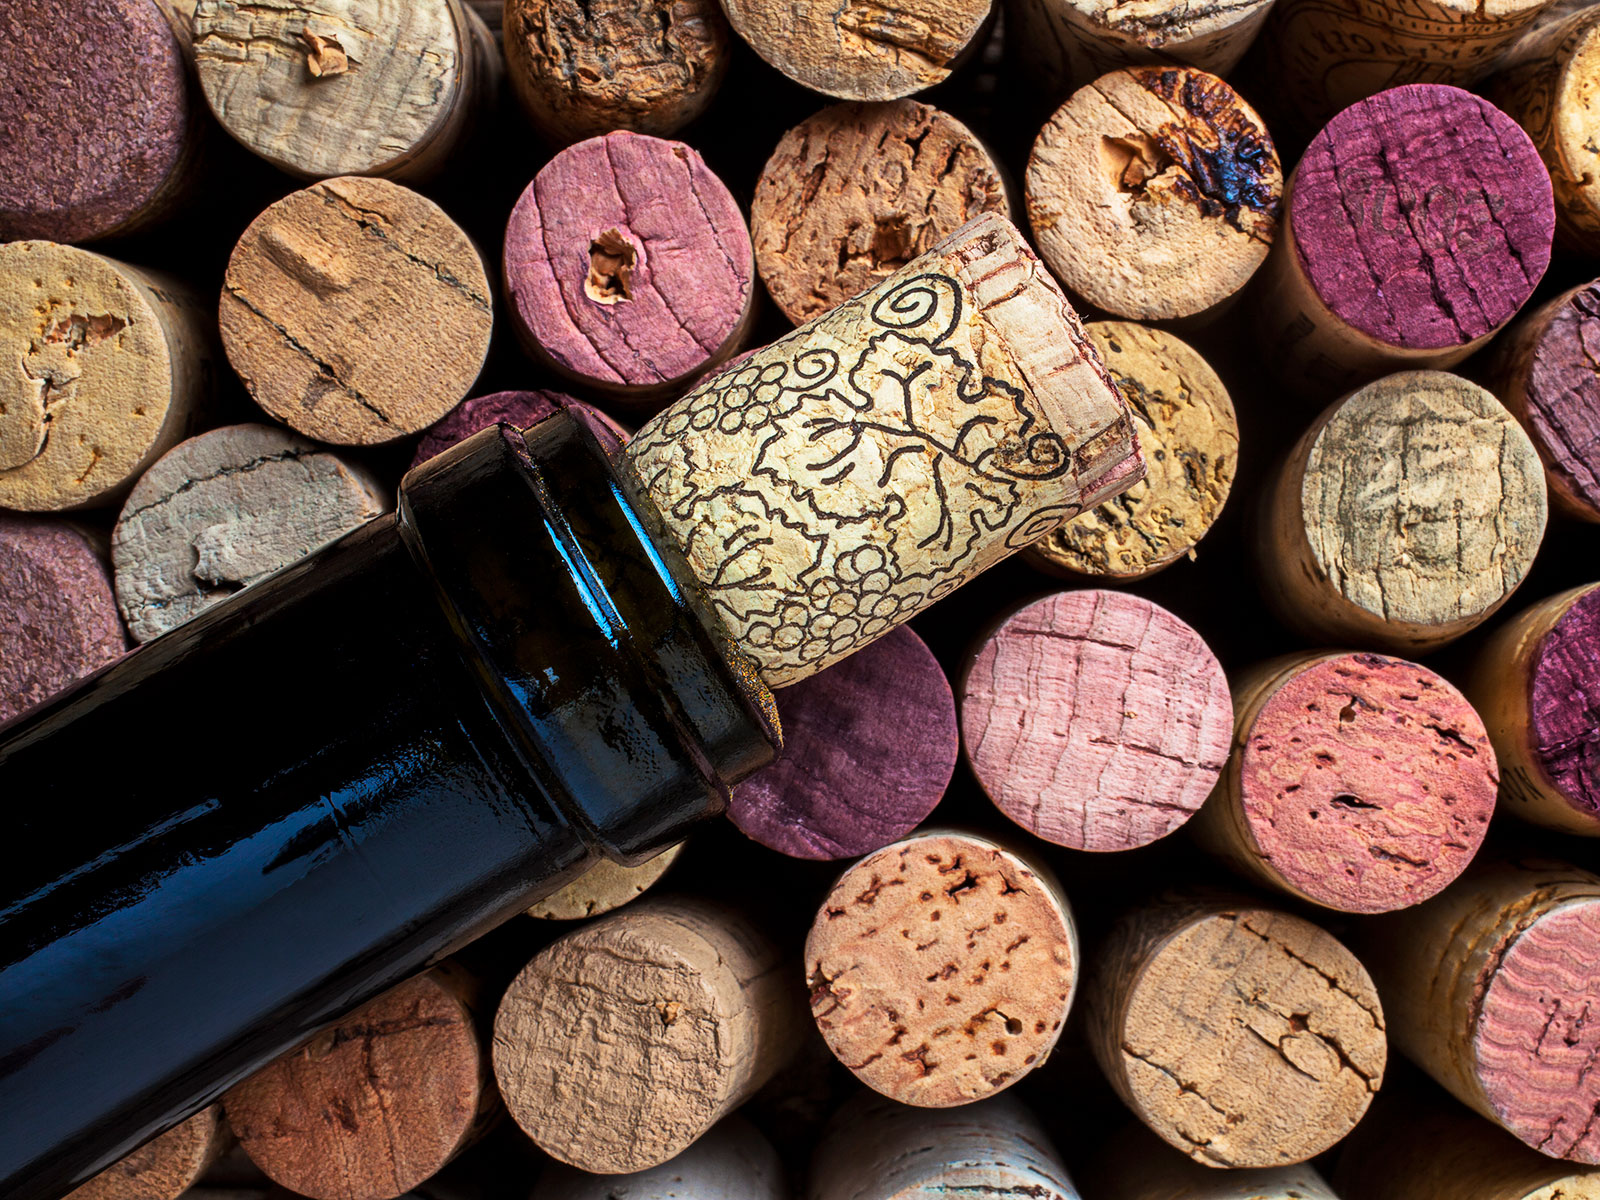 wine bottle with corks